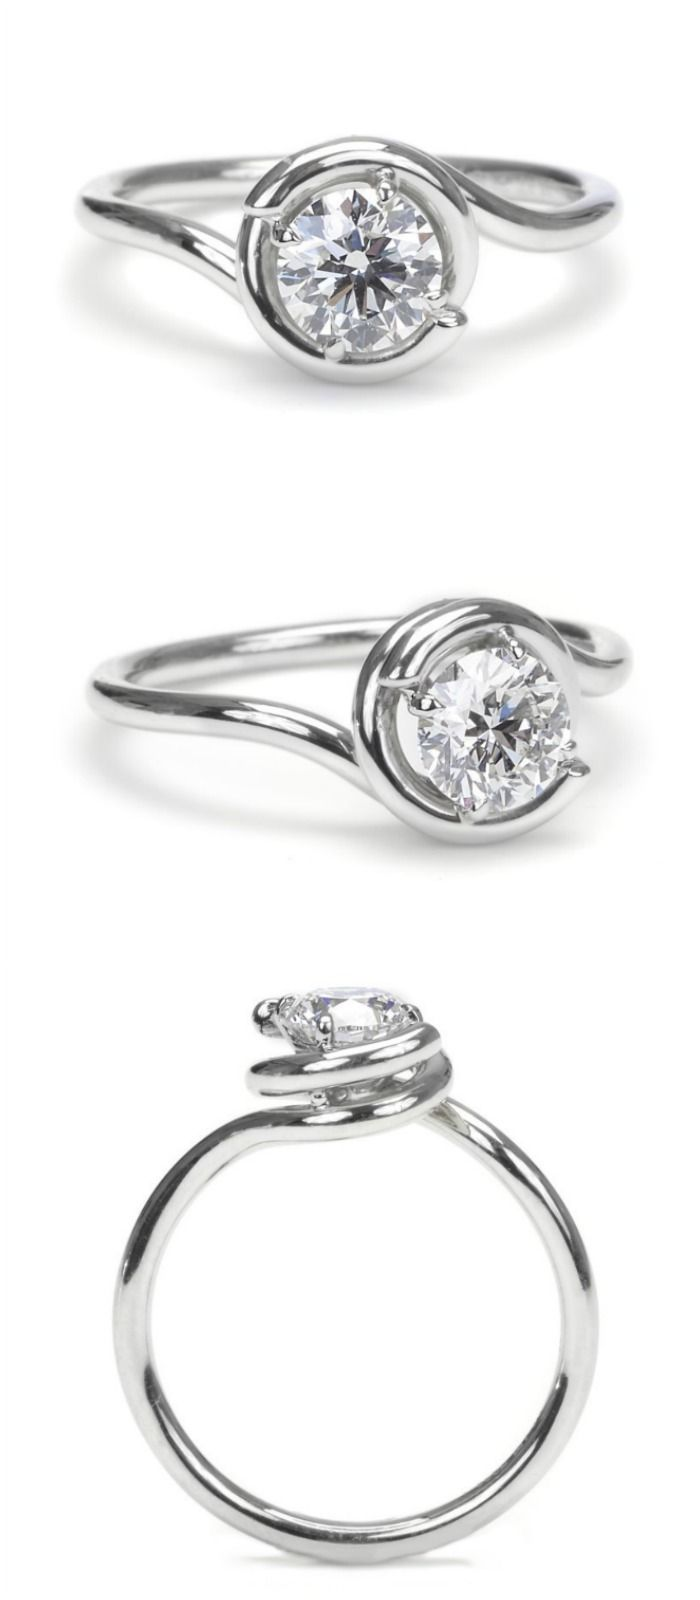 Best 20+ Solitaire ring designs ideas on Pinterest | Art deco ...